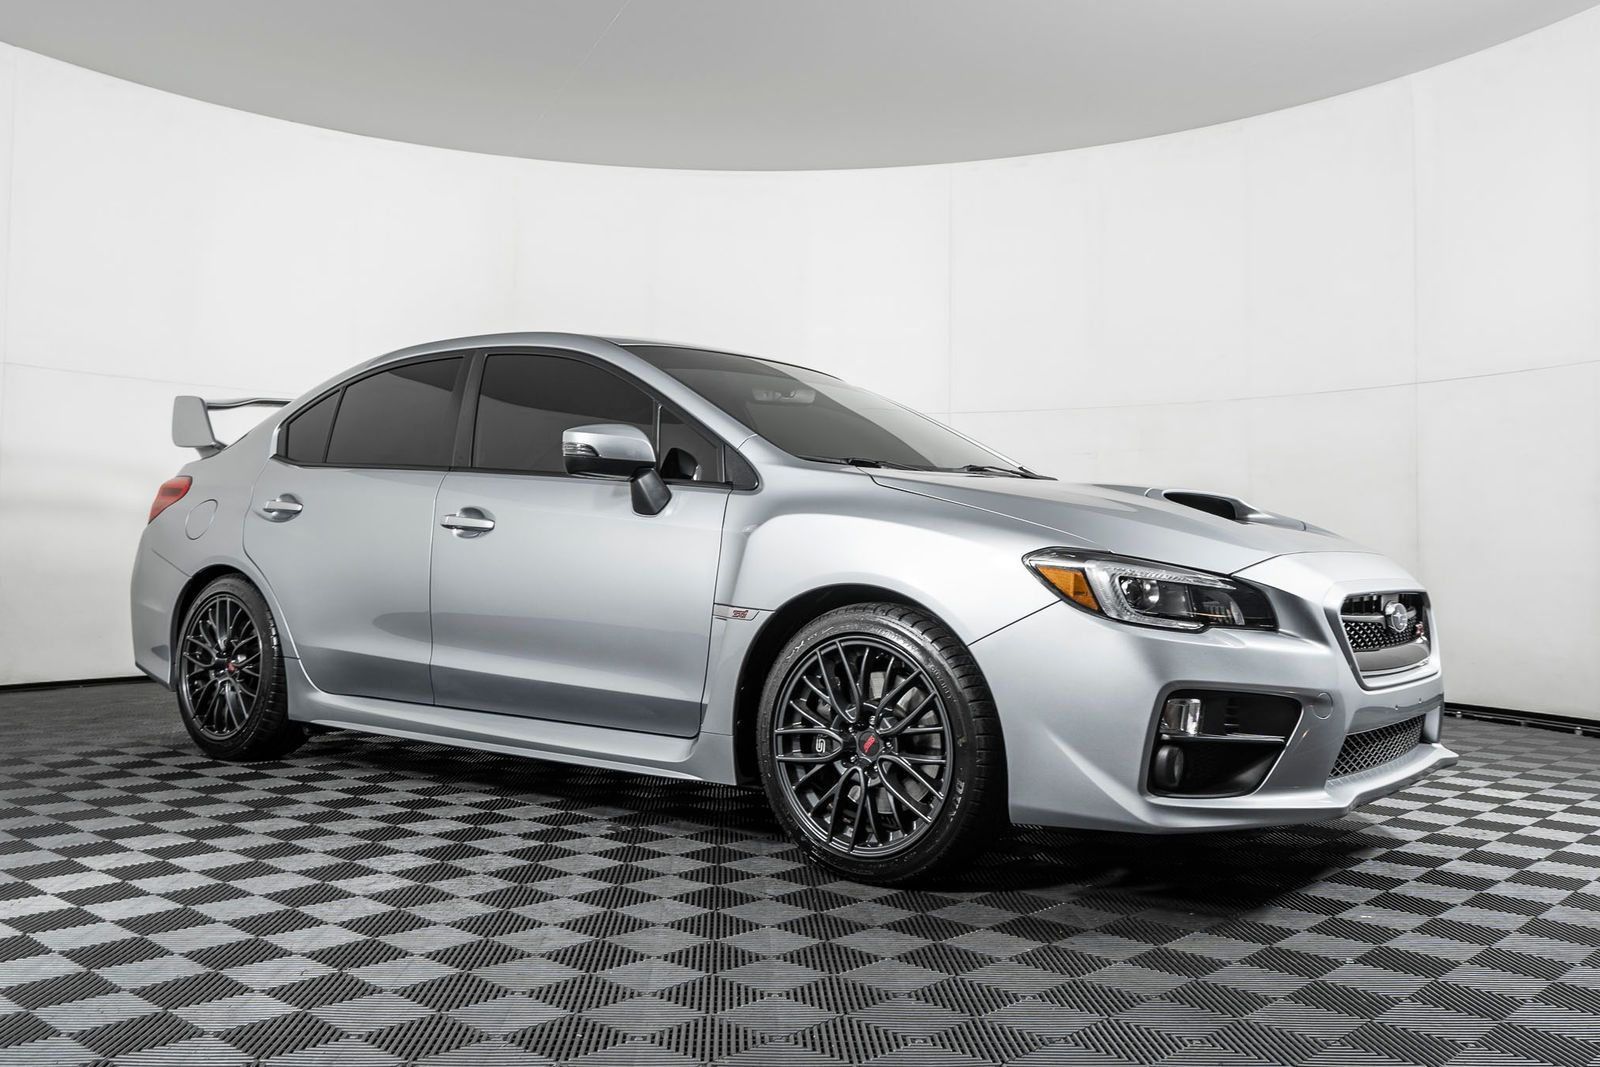 Used 2017 Subaru WRX STI AWD Sedan For Sale Northwest